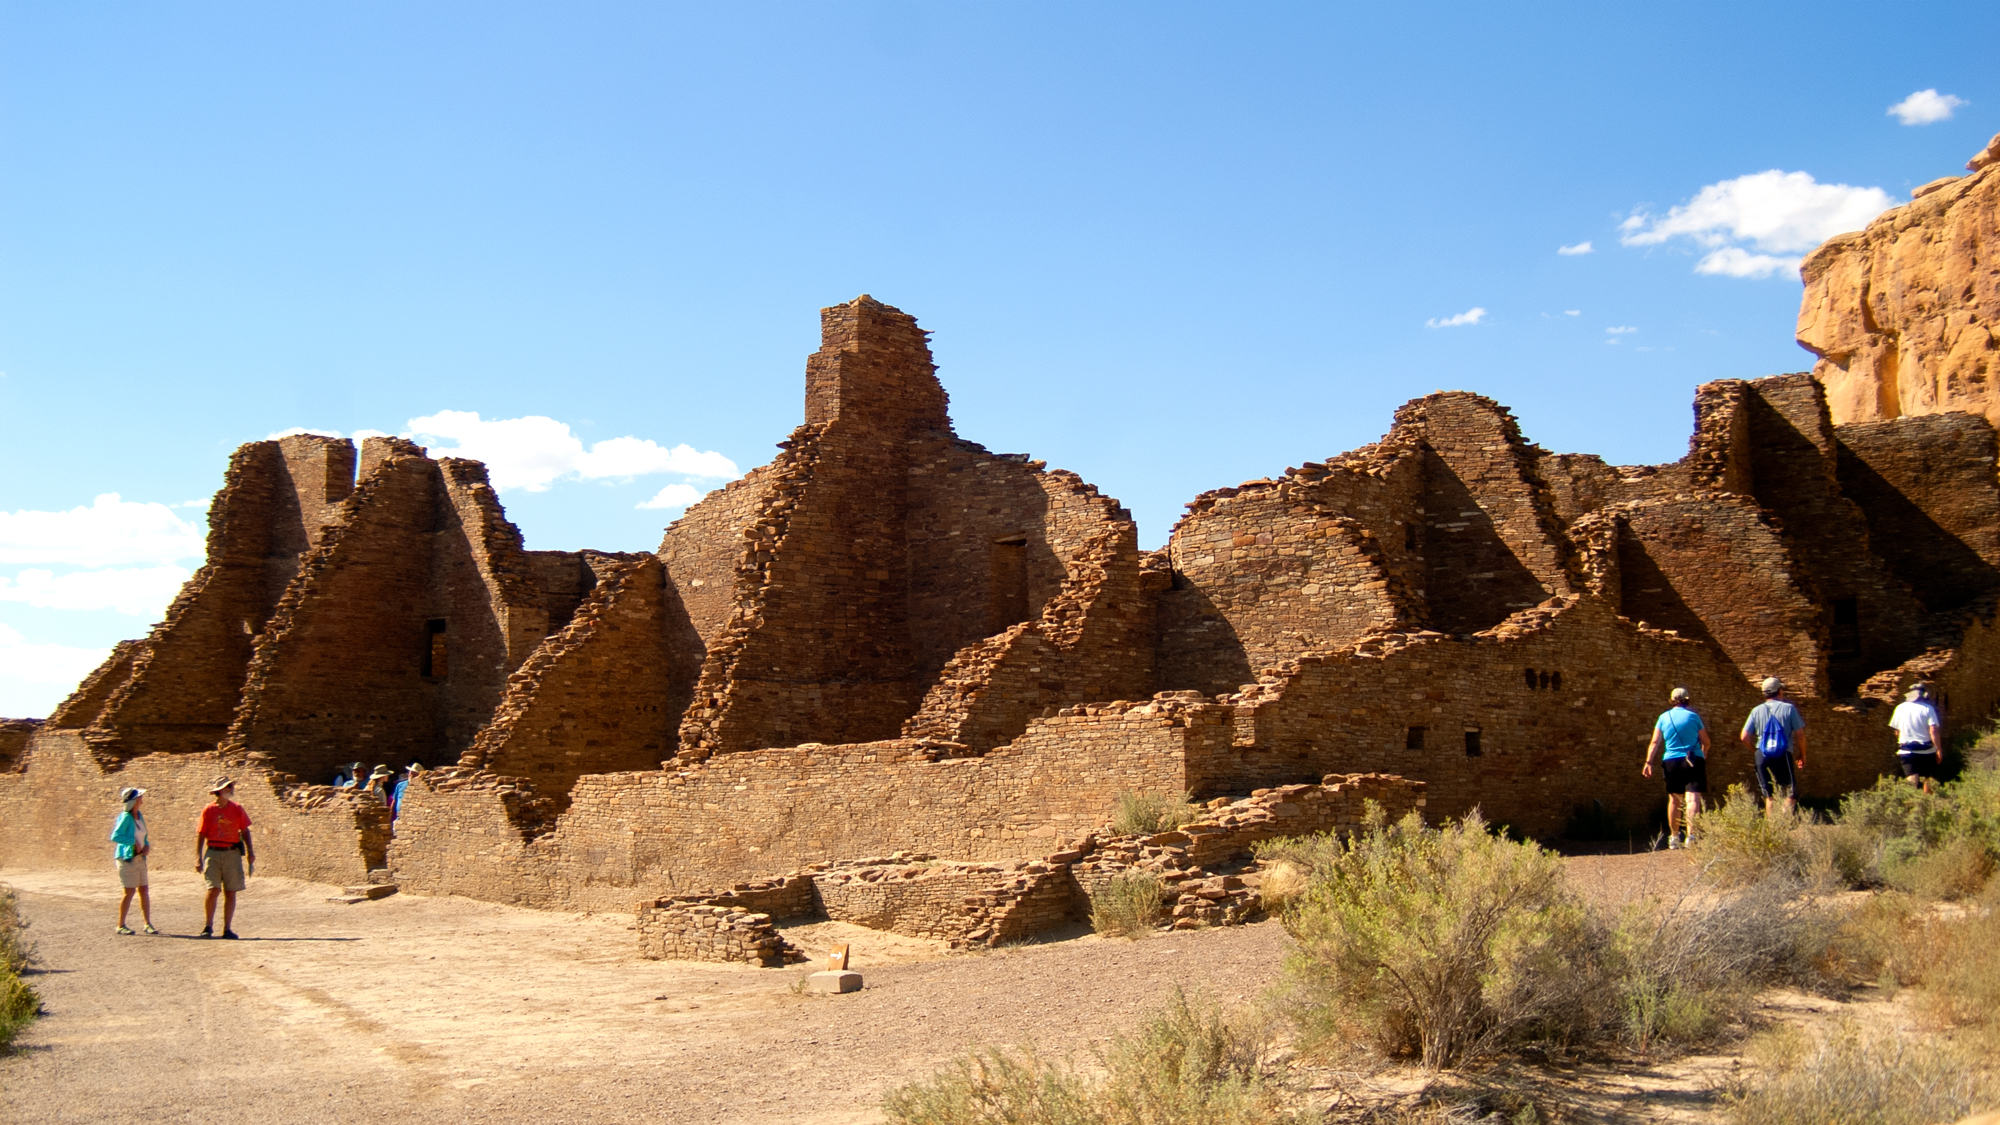 Pueblo Bonito ruins with visitors walking the trail